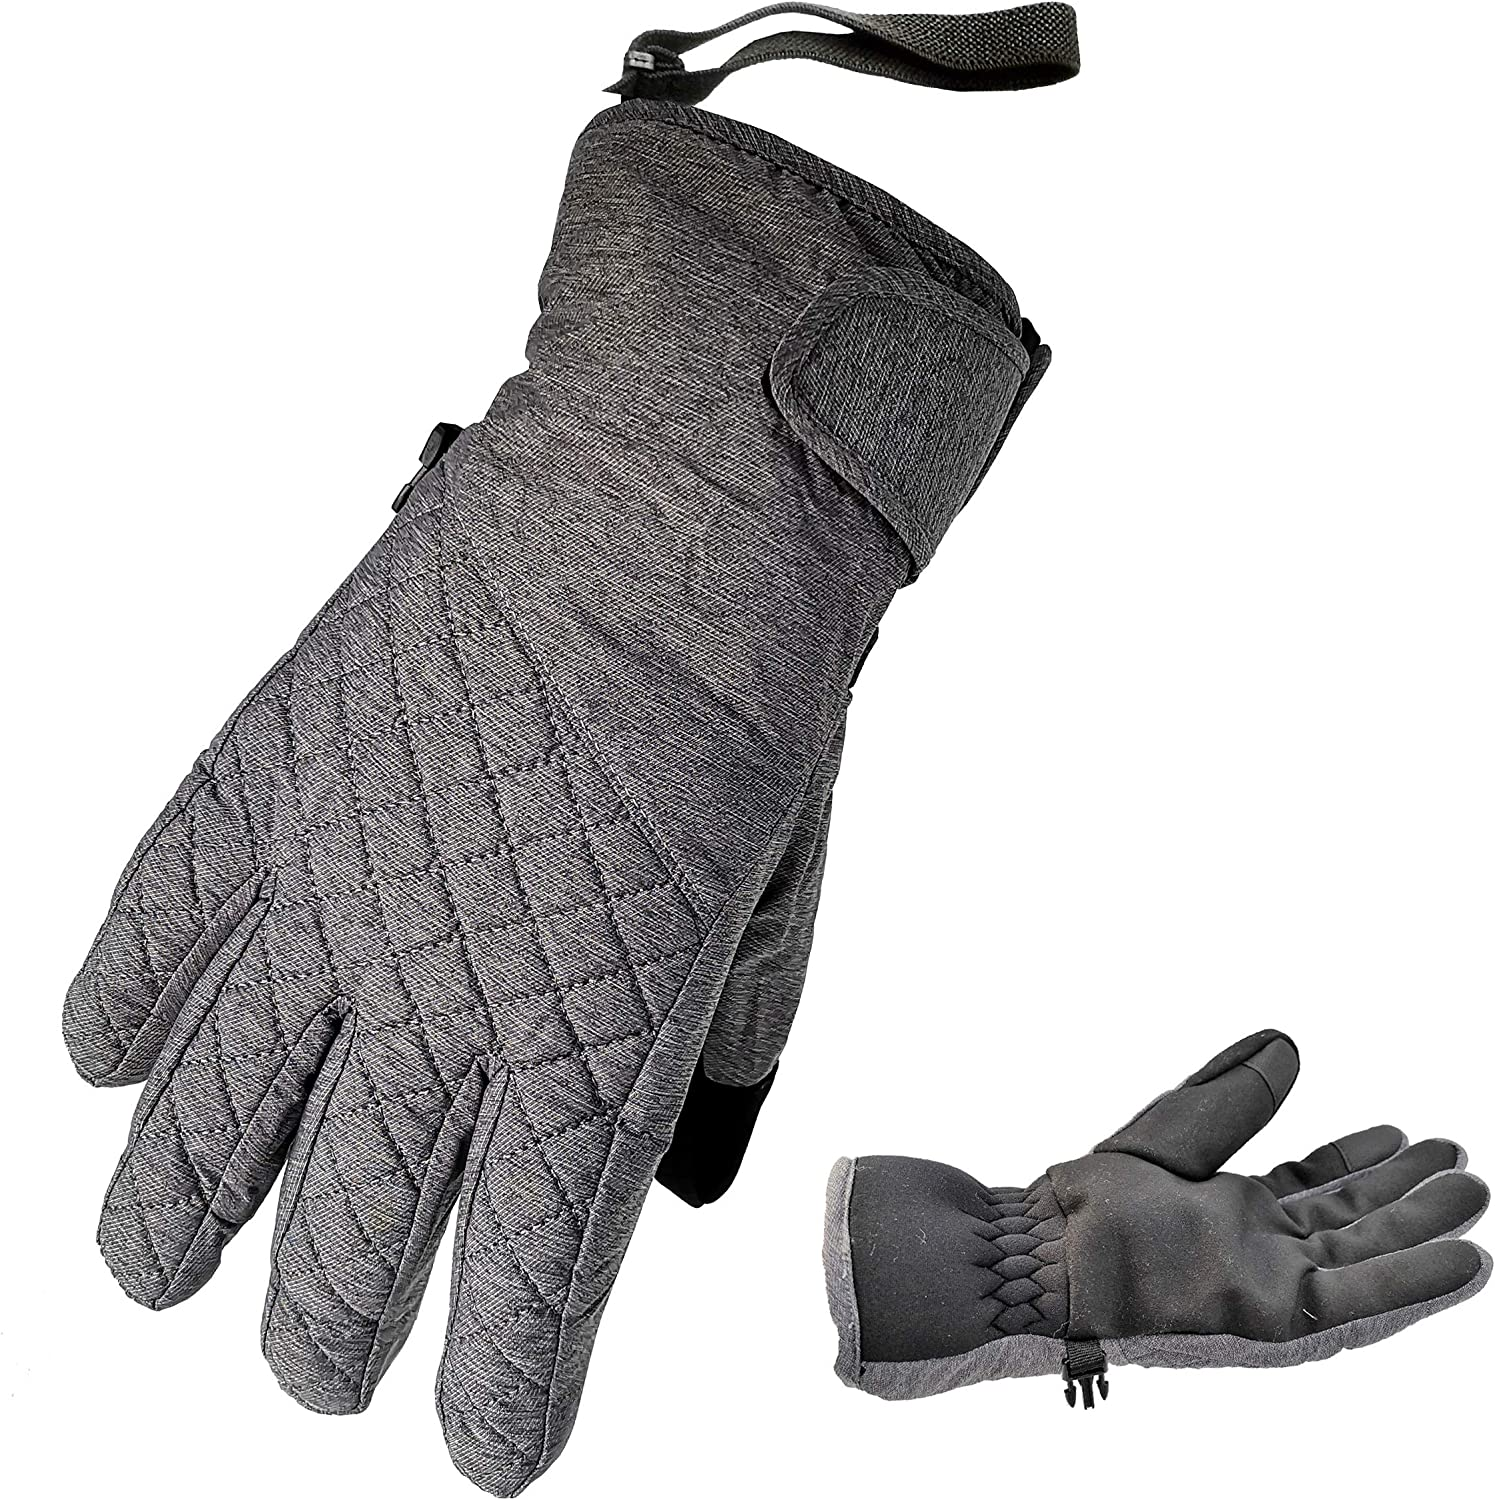 HIGHCAMP Winter Ski Snow Mittens for Women - Warm Waterproof Gloves with Drawstring for Cold Weather - Snowboarding, Skiing, Shoveling & More Outdoor Sports : Clothing